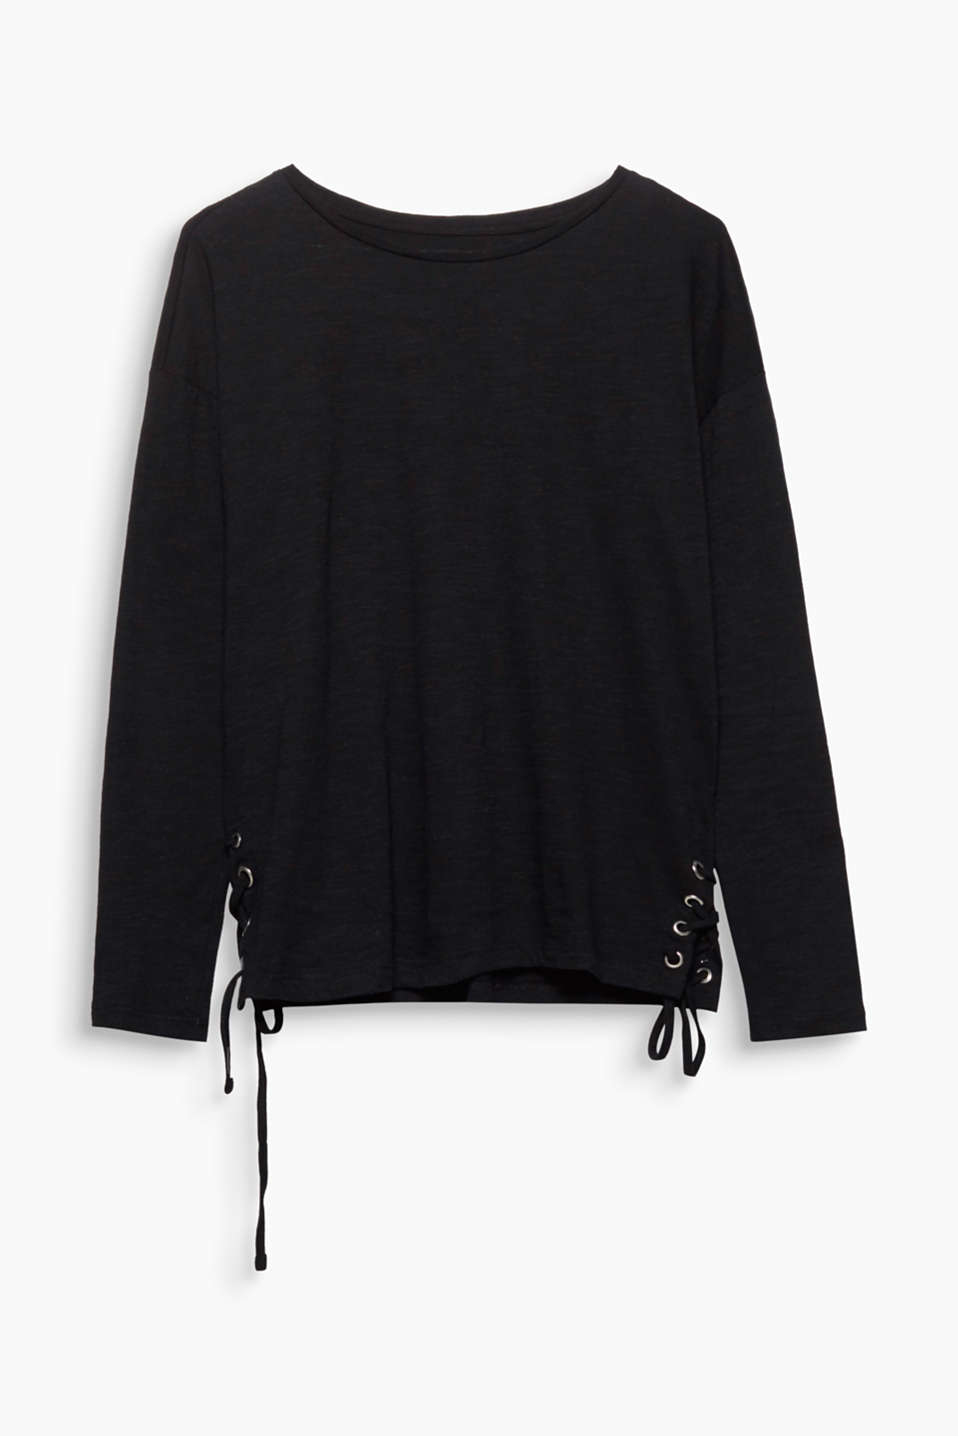 This airy slub jersey top features eye-catching lacing effects on the sides.